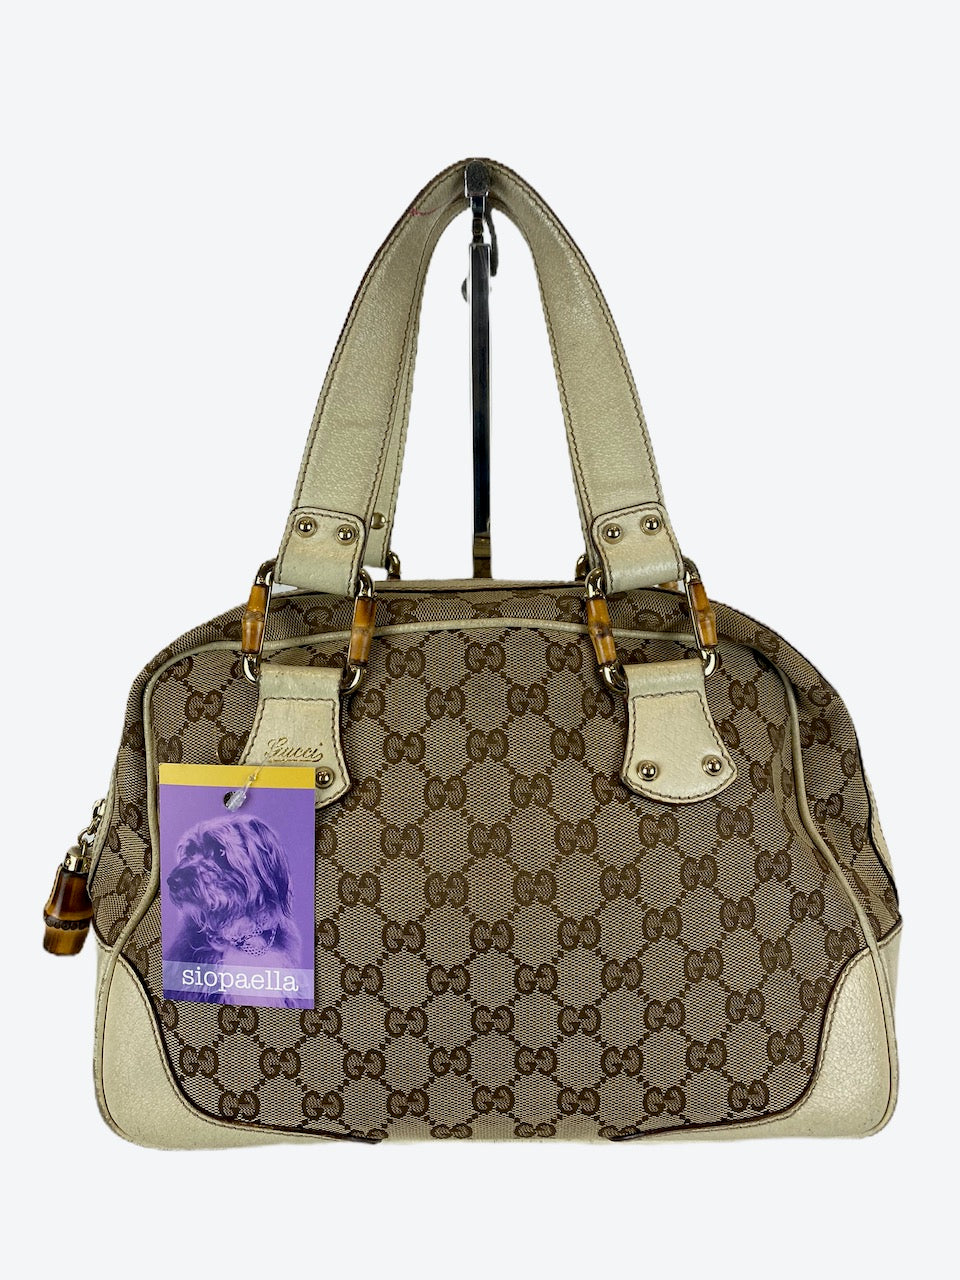 Gucci Monogram Canvas Tote - As Seen on Instagram 2/9/20